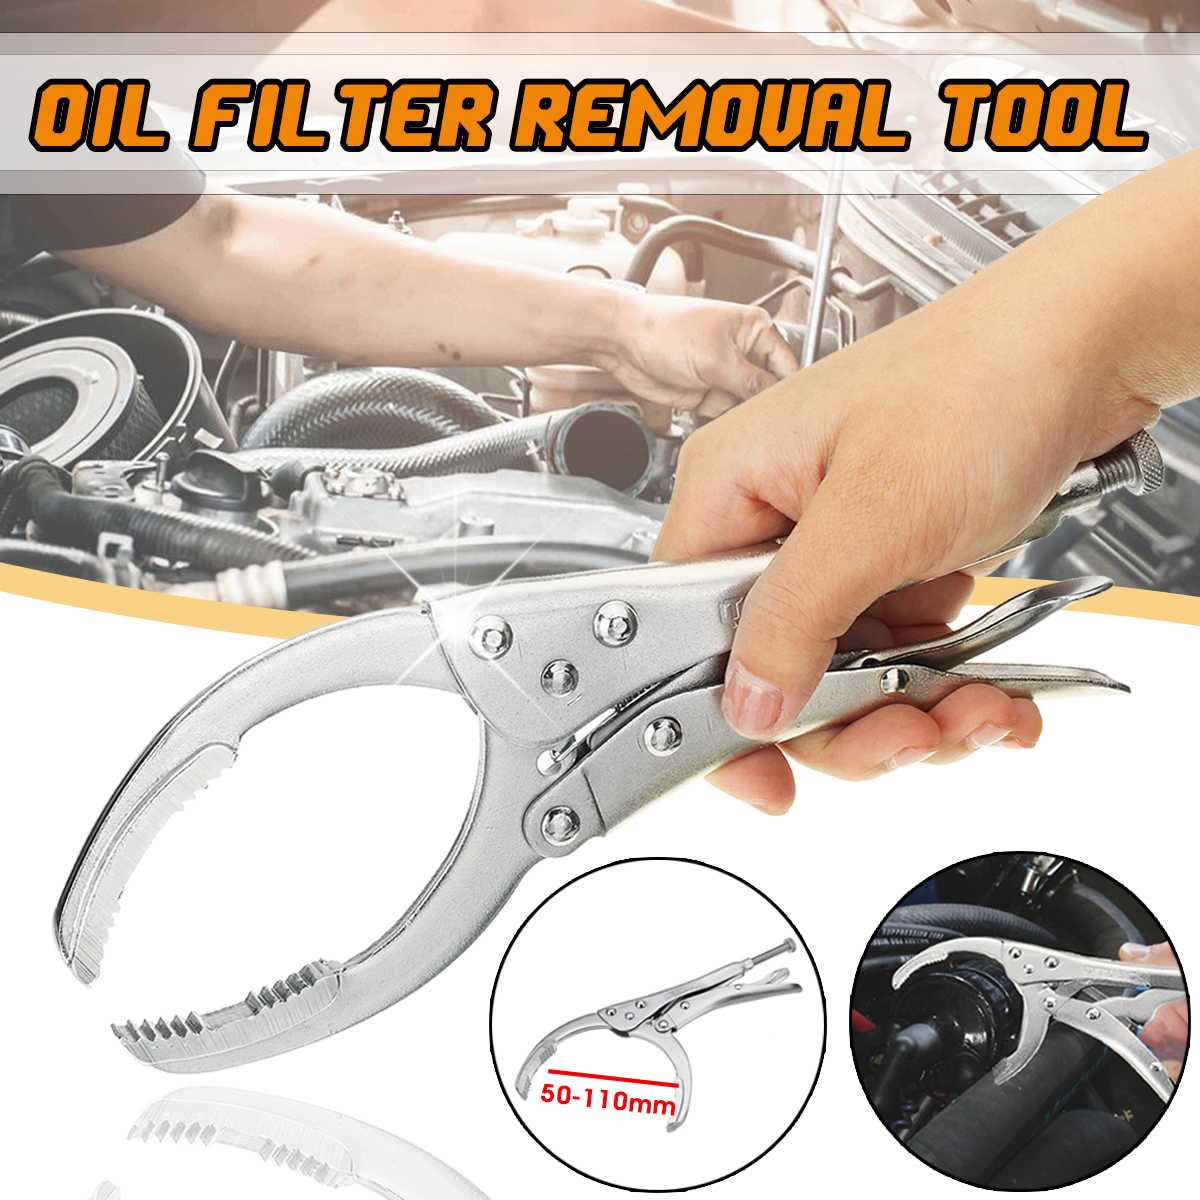 Car Oil Filter Plier Remover Wrench Vice Locking Grip Vise Spanner Removal Tool Auto Repair Hand ToolsCar Oil Filter Plier Remover Wrench Vice Locking Grip Vise Spanner Removal Tool Auto Repair Hand Tools